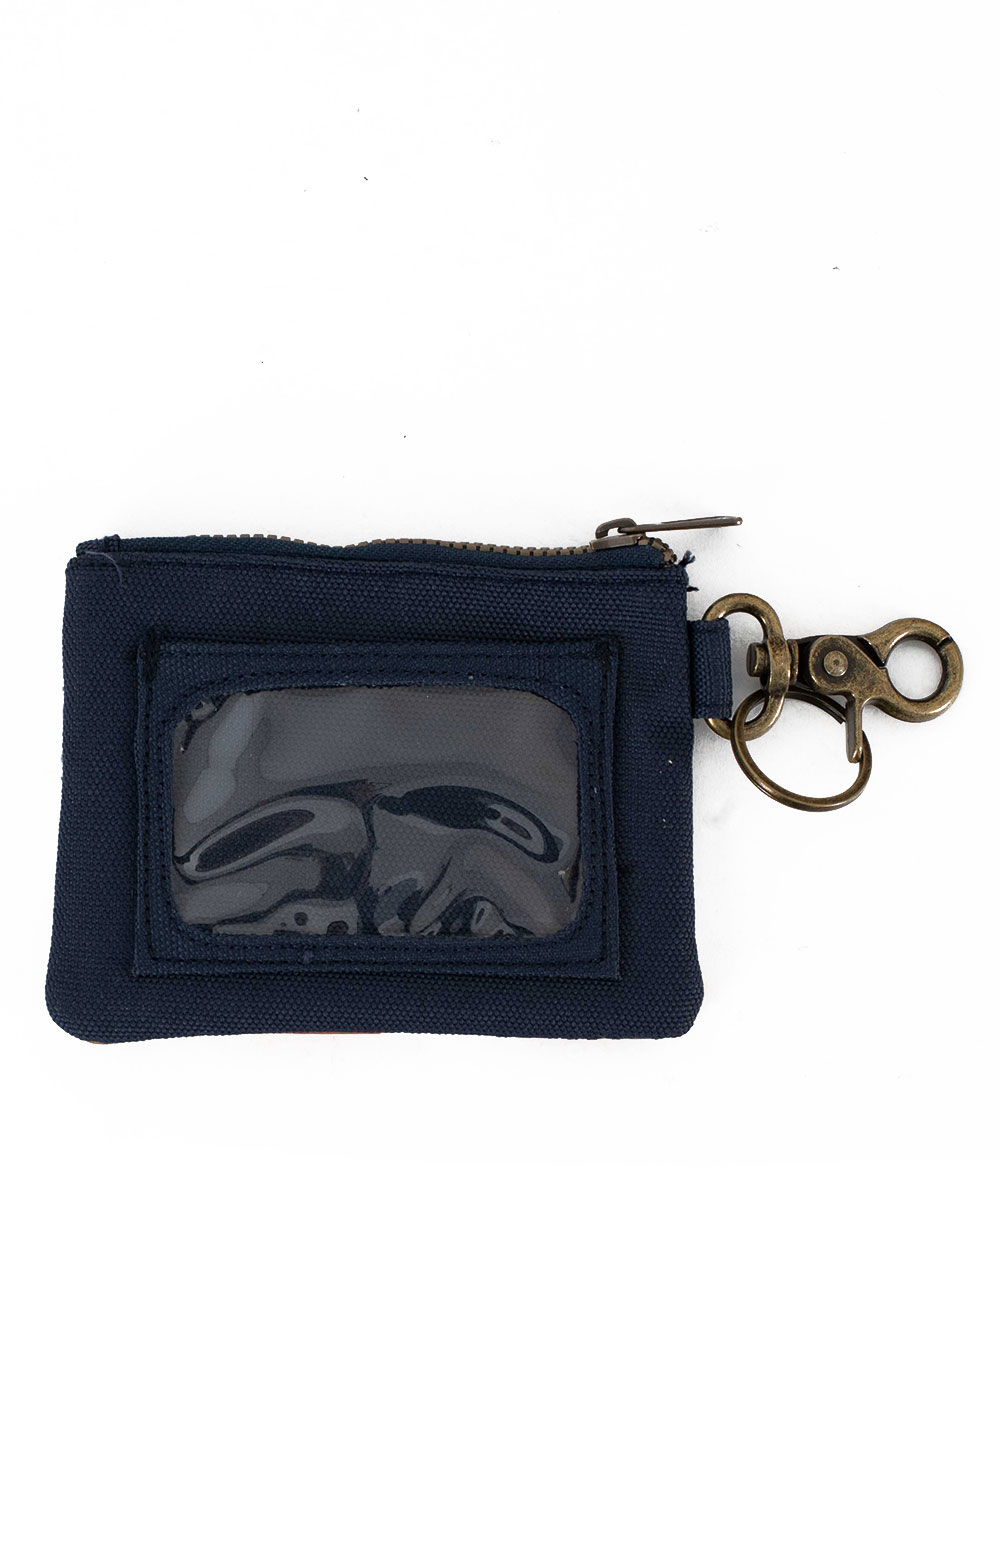 Canopy Canvas ID Pouch Key Ring - Flacon Cove Sunset  2